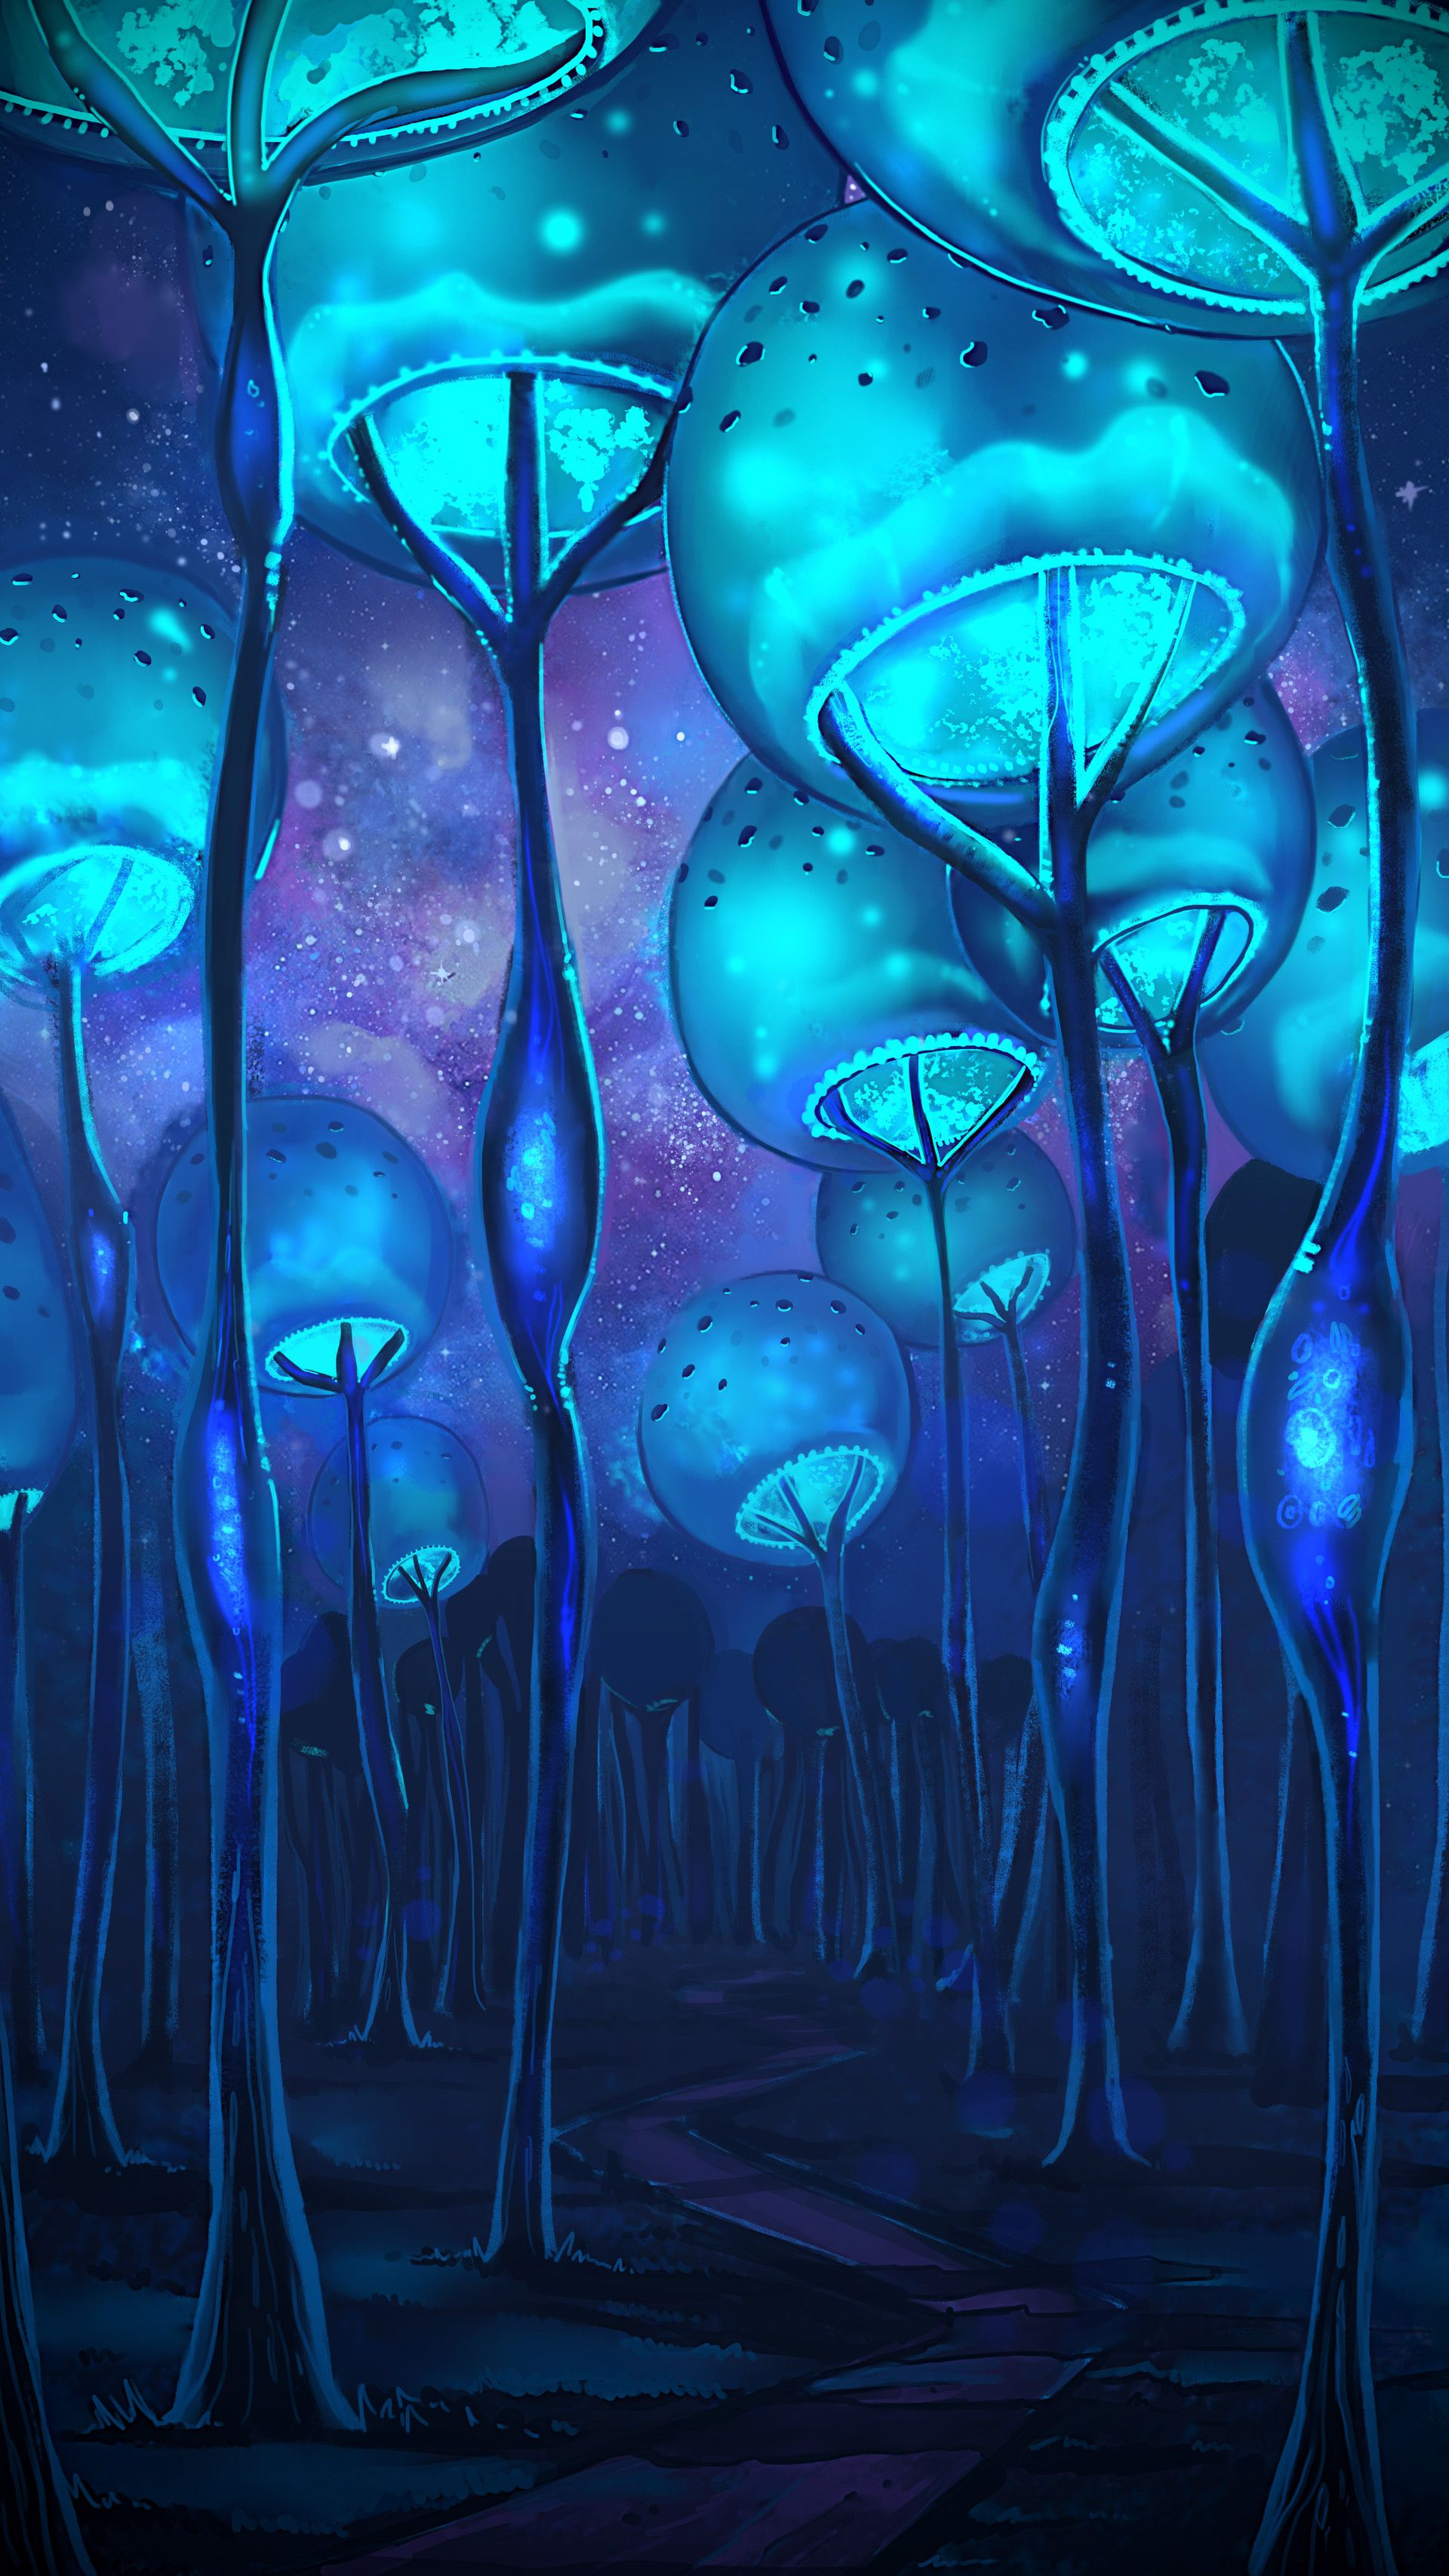 Bubble Forest By Kim Kresan Cdna Artstation Com Submitted By Dr Mrs Them0narch To R Imaginaryforest Fantasy Art Landscapes Psychedelic Art Fantasy Landscape